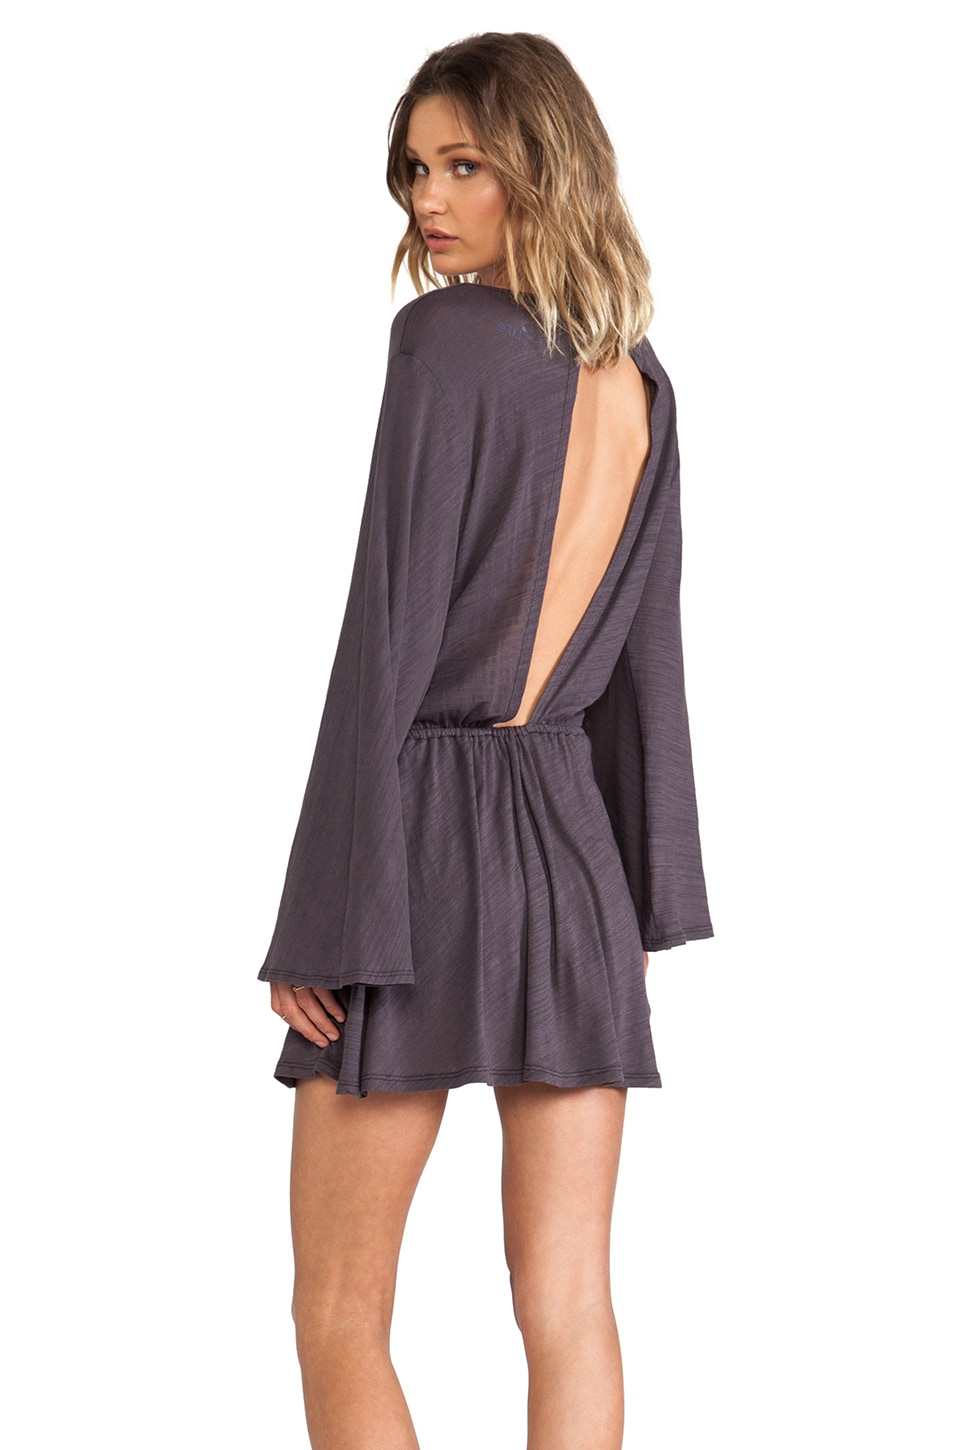 Blue Life Free Spirit Dress in Faded Black